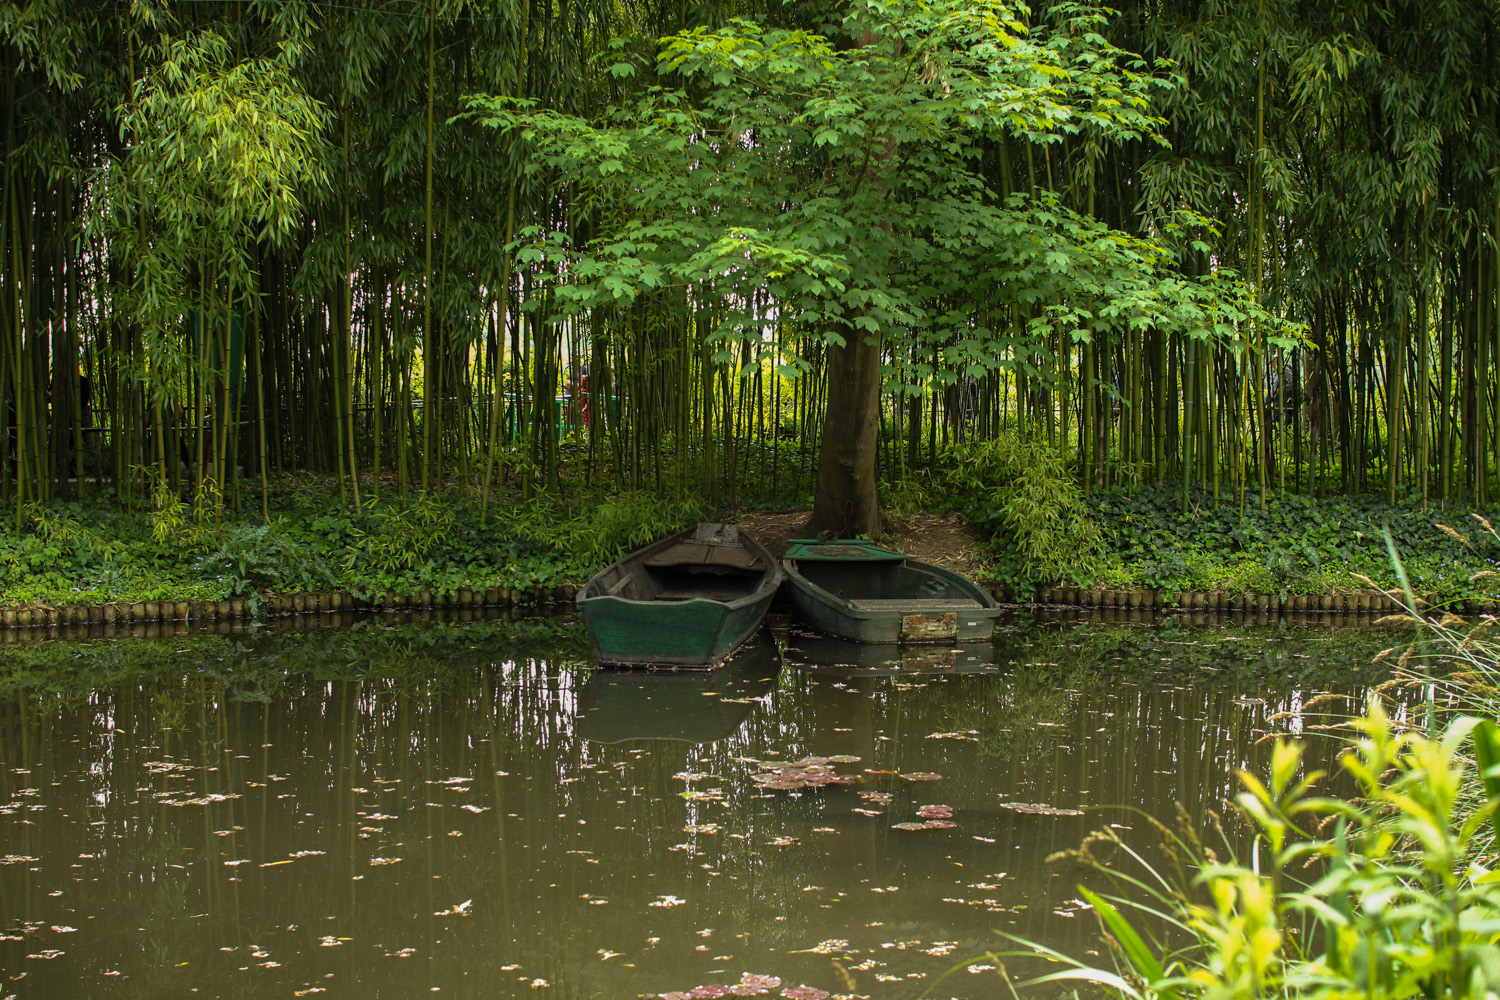 Boats in Monet's Garden, Giverny